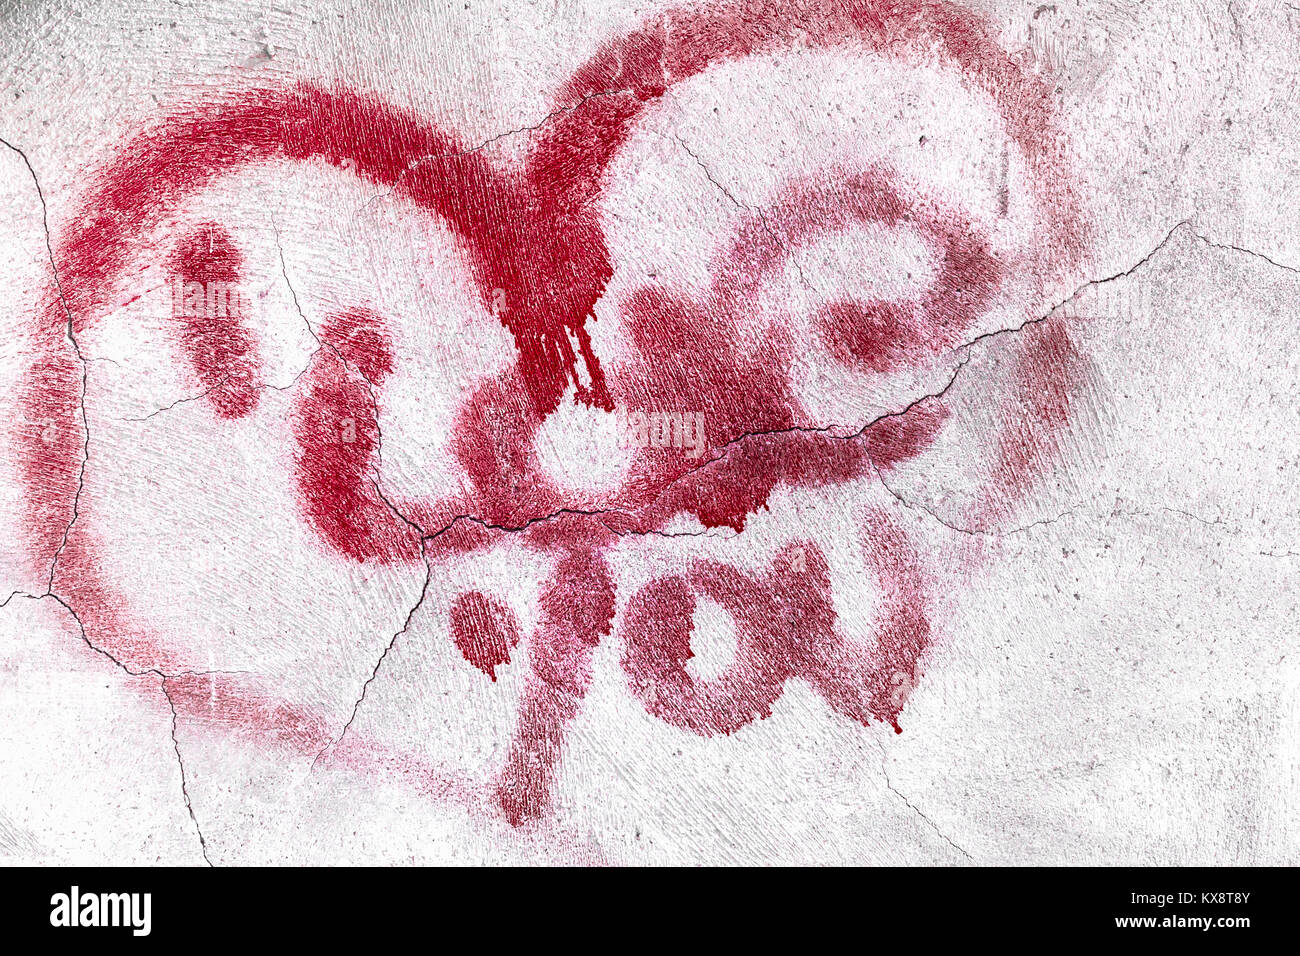 Red broken heart symbol with love message on textured cracked wall red broken heart symbol with love message on textured cracked wall background biocorpaavc